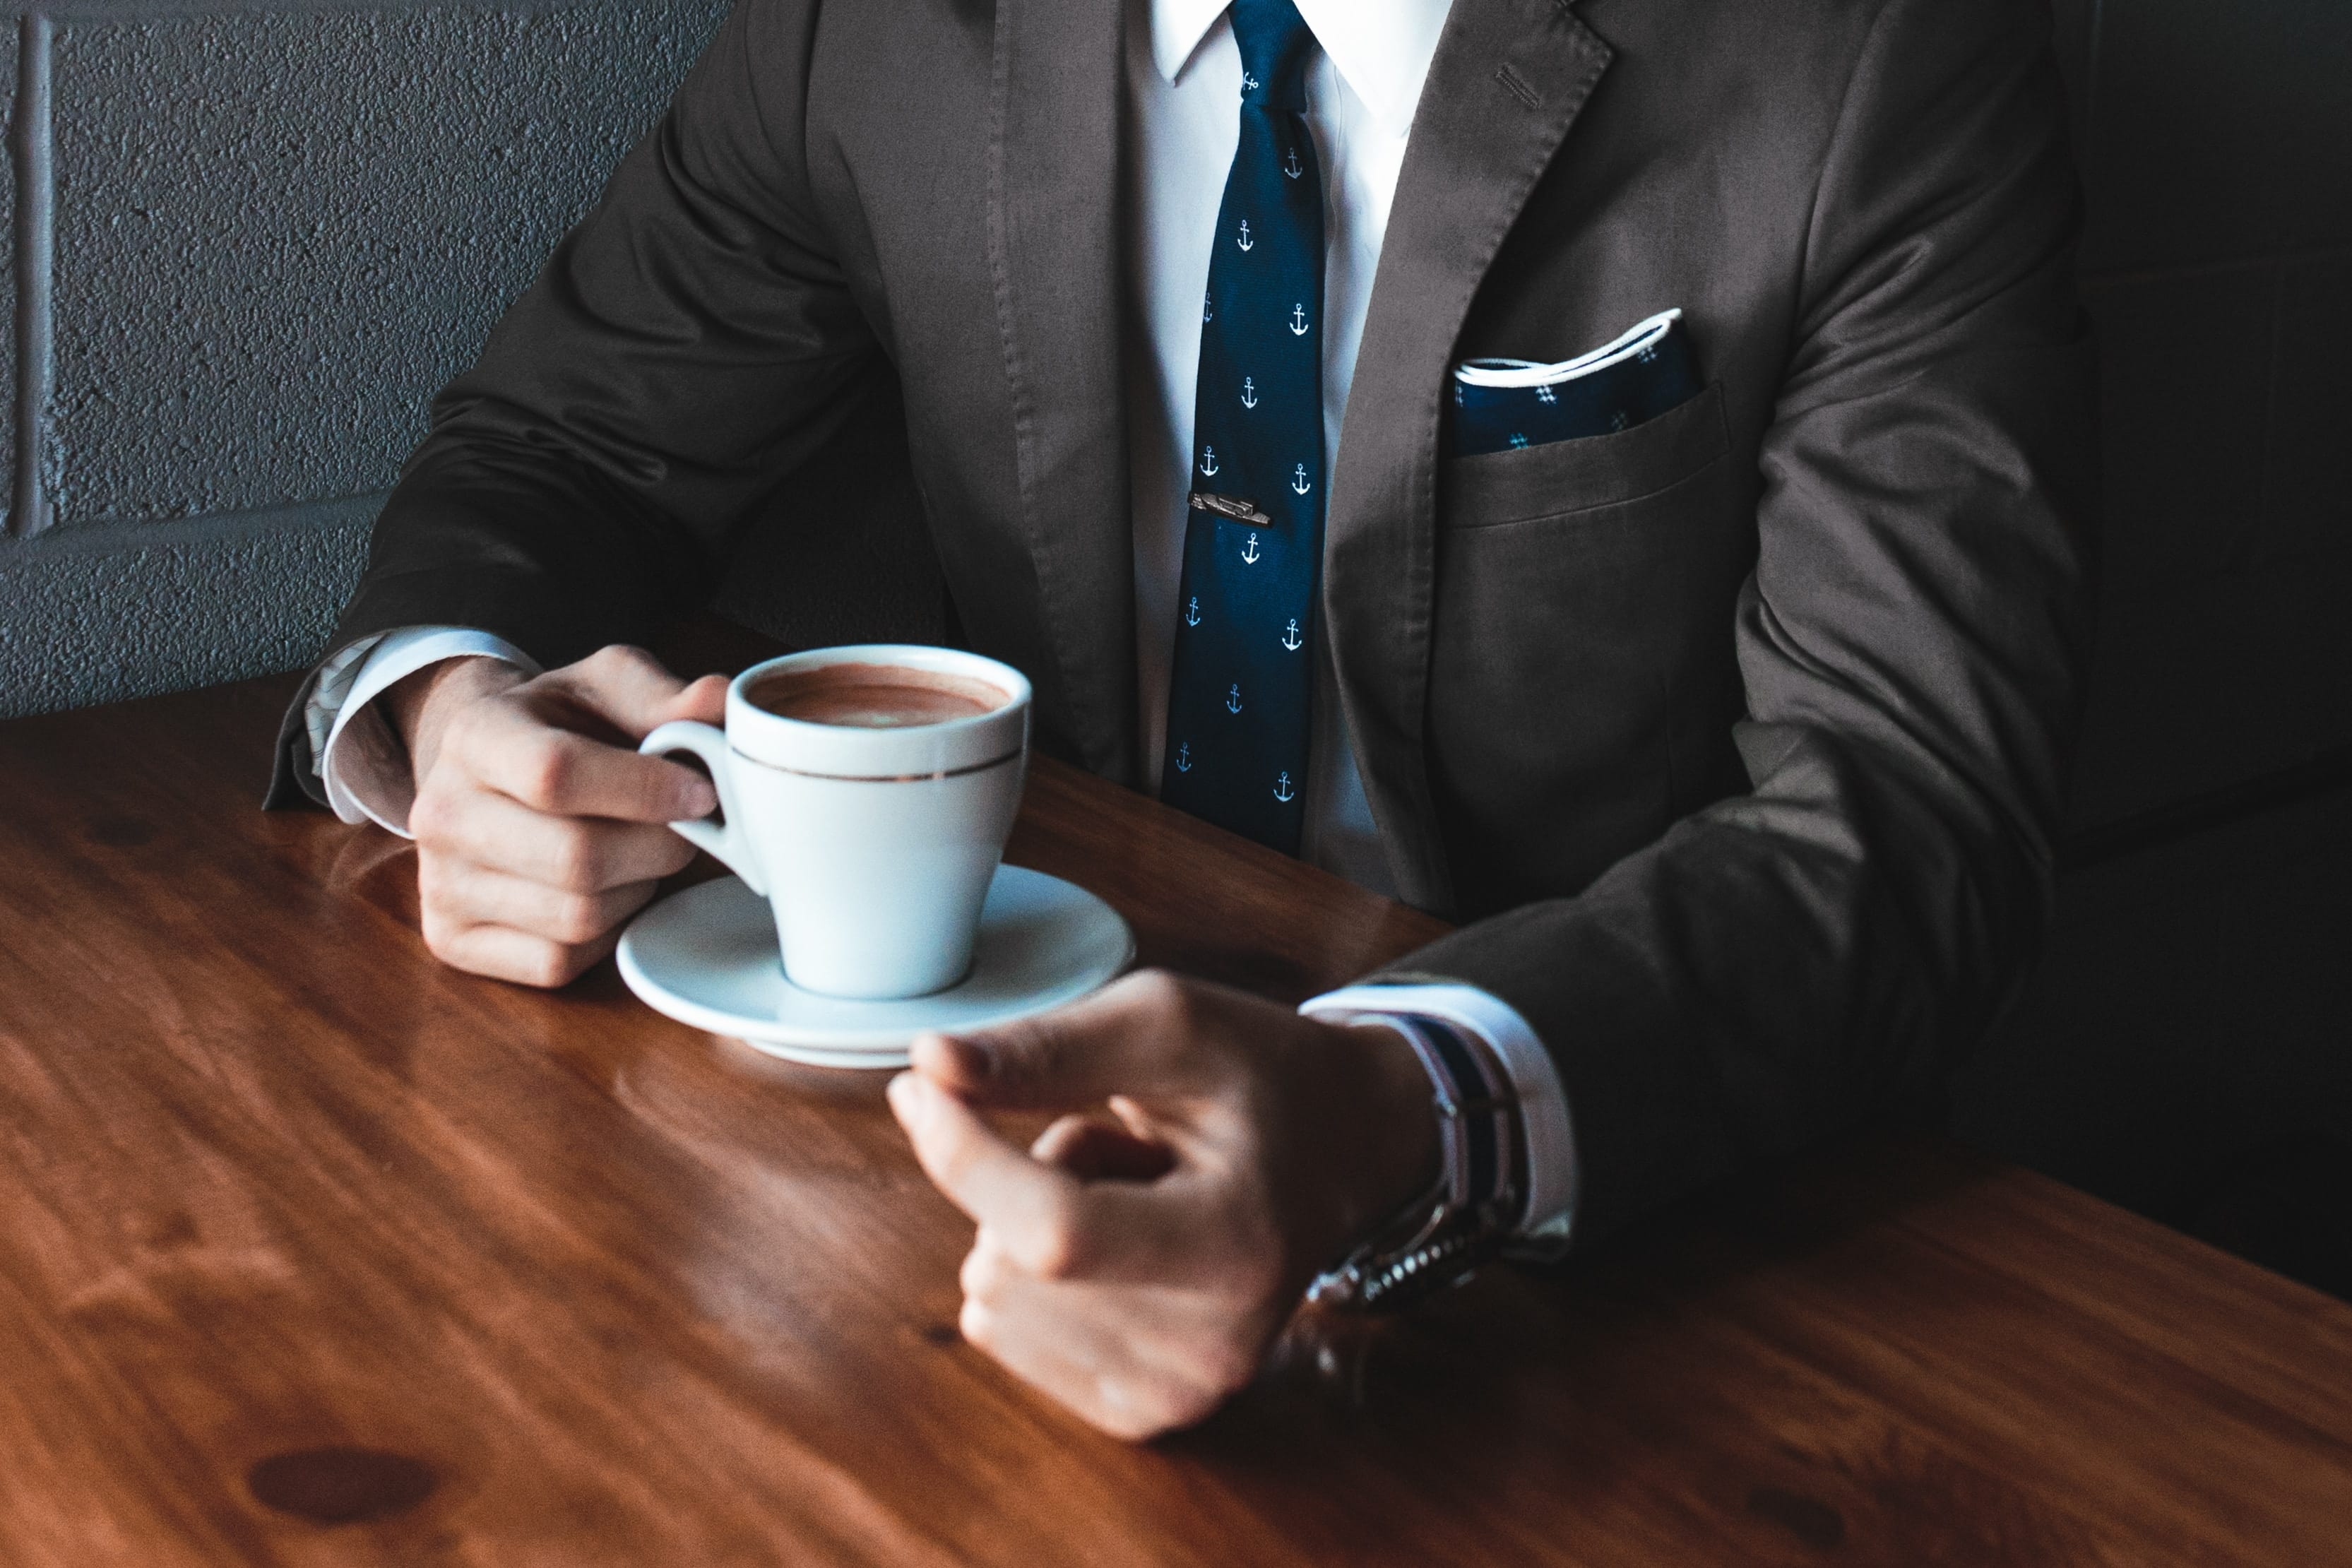 Man holding cup filled with coffee on table; image by Andrew Neel, via Unsplash.com.